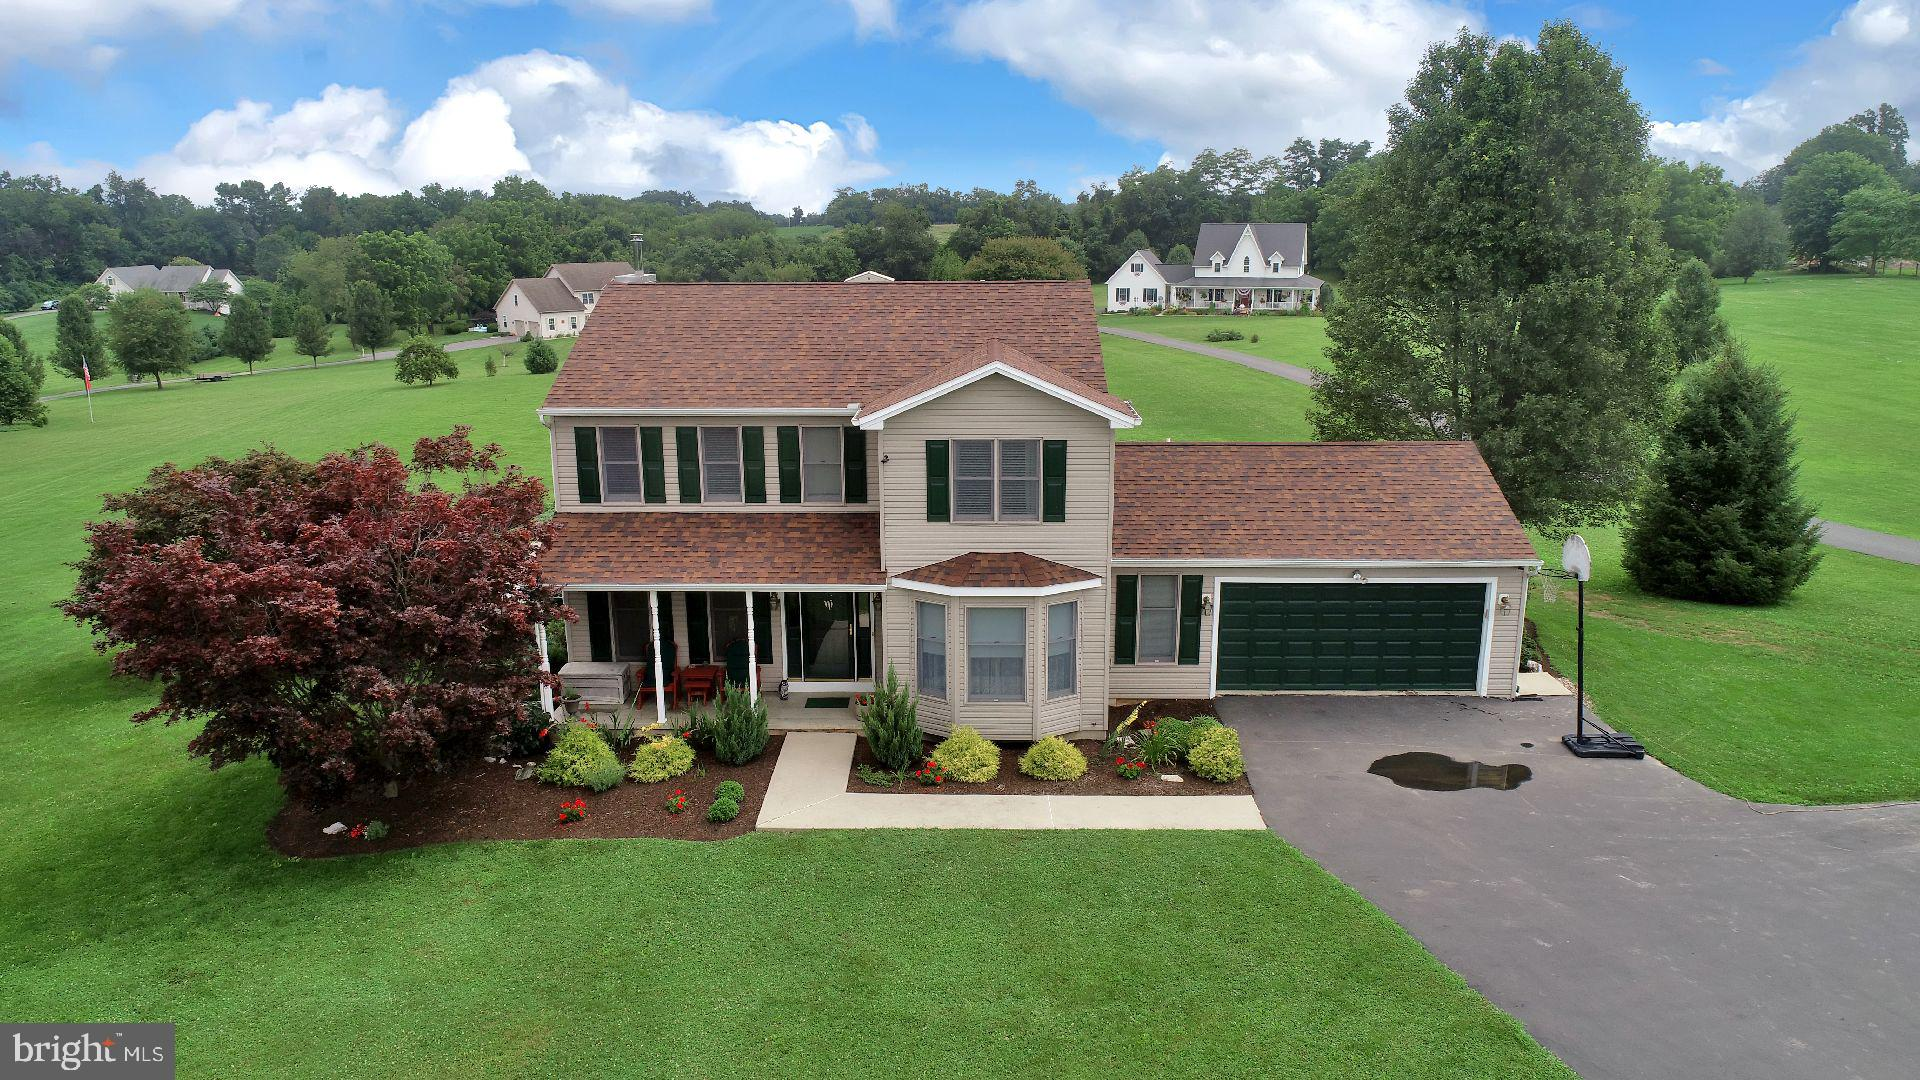 229 LOG CABIN ROAD, NEWVILLE, PA 17241